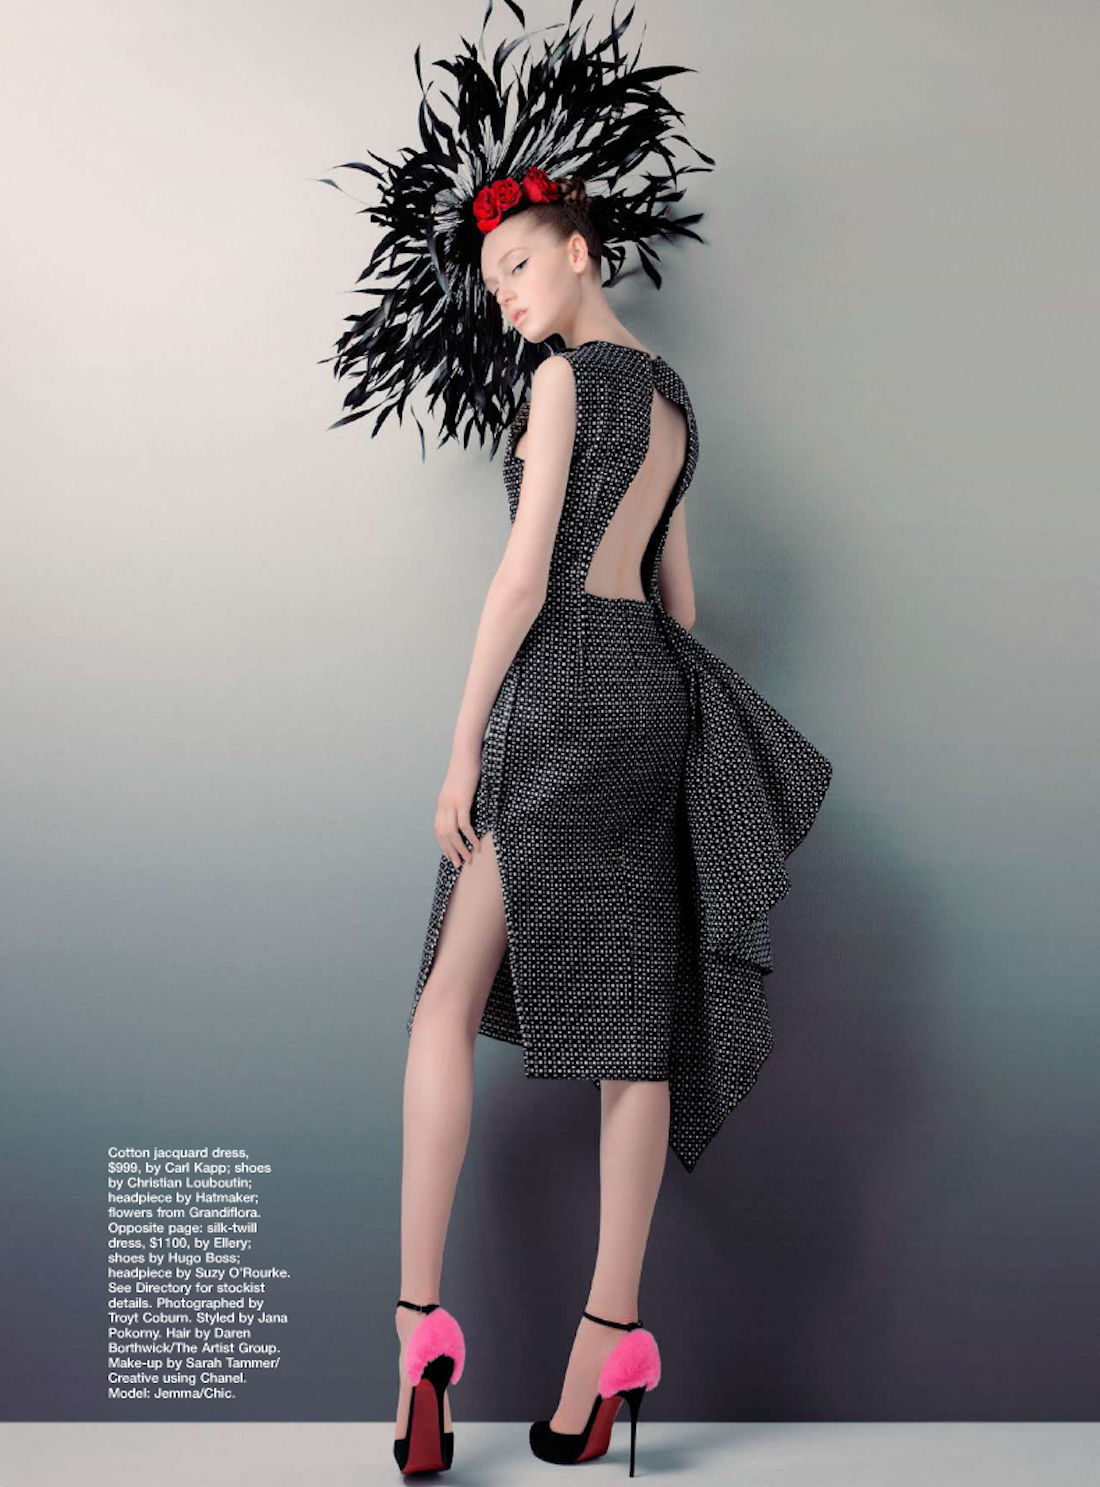 MARIE CLAIRE AUSTRALIA- Jemma Baines in Whos That Girl